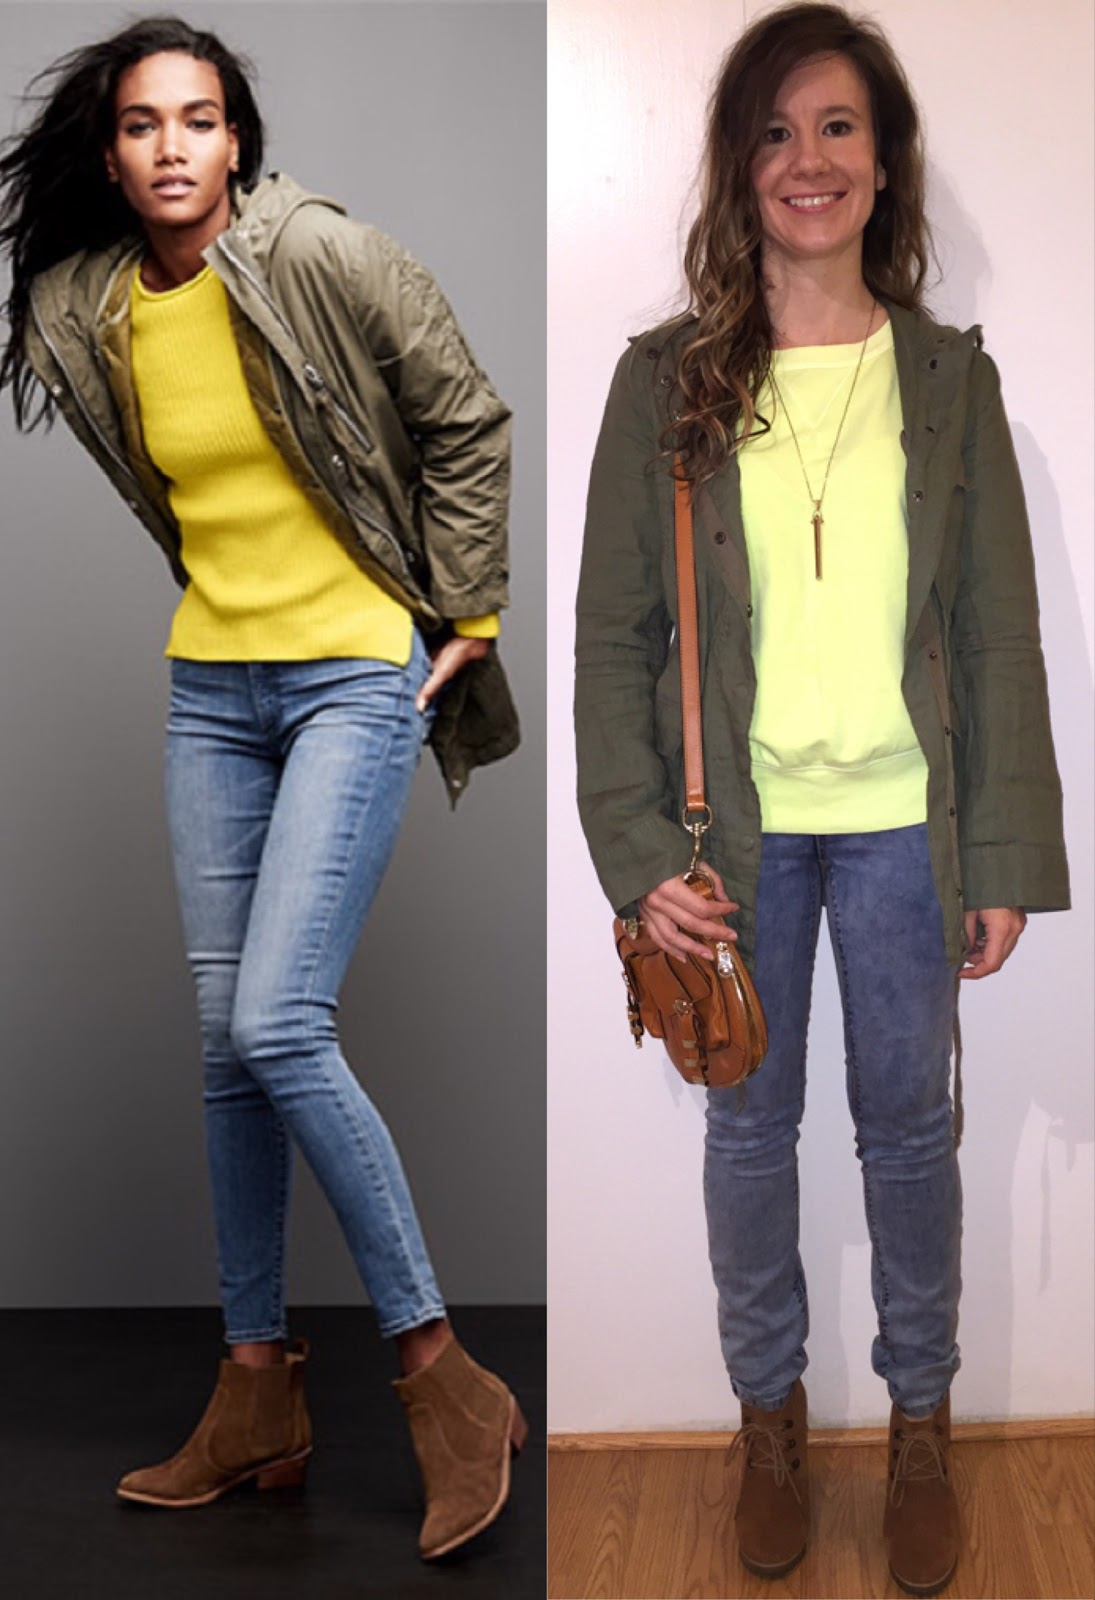 Gap Neon Yellow Sweater London Jeans Jacket Steve Madden Wedge Booties Karen Millen Bag Stella And Dot Rebel Pendant Necklace